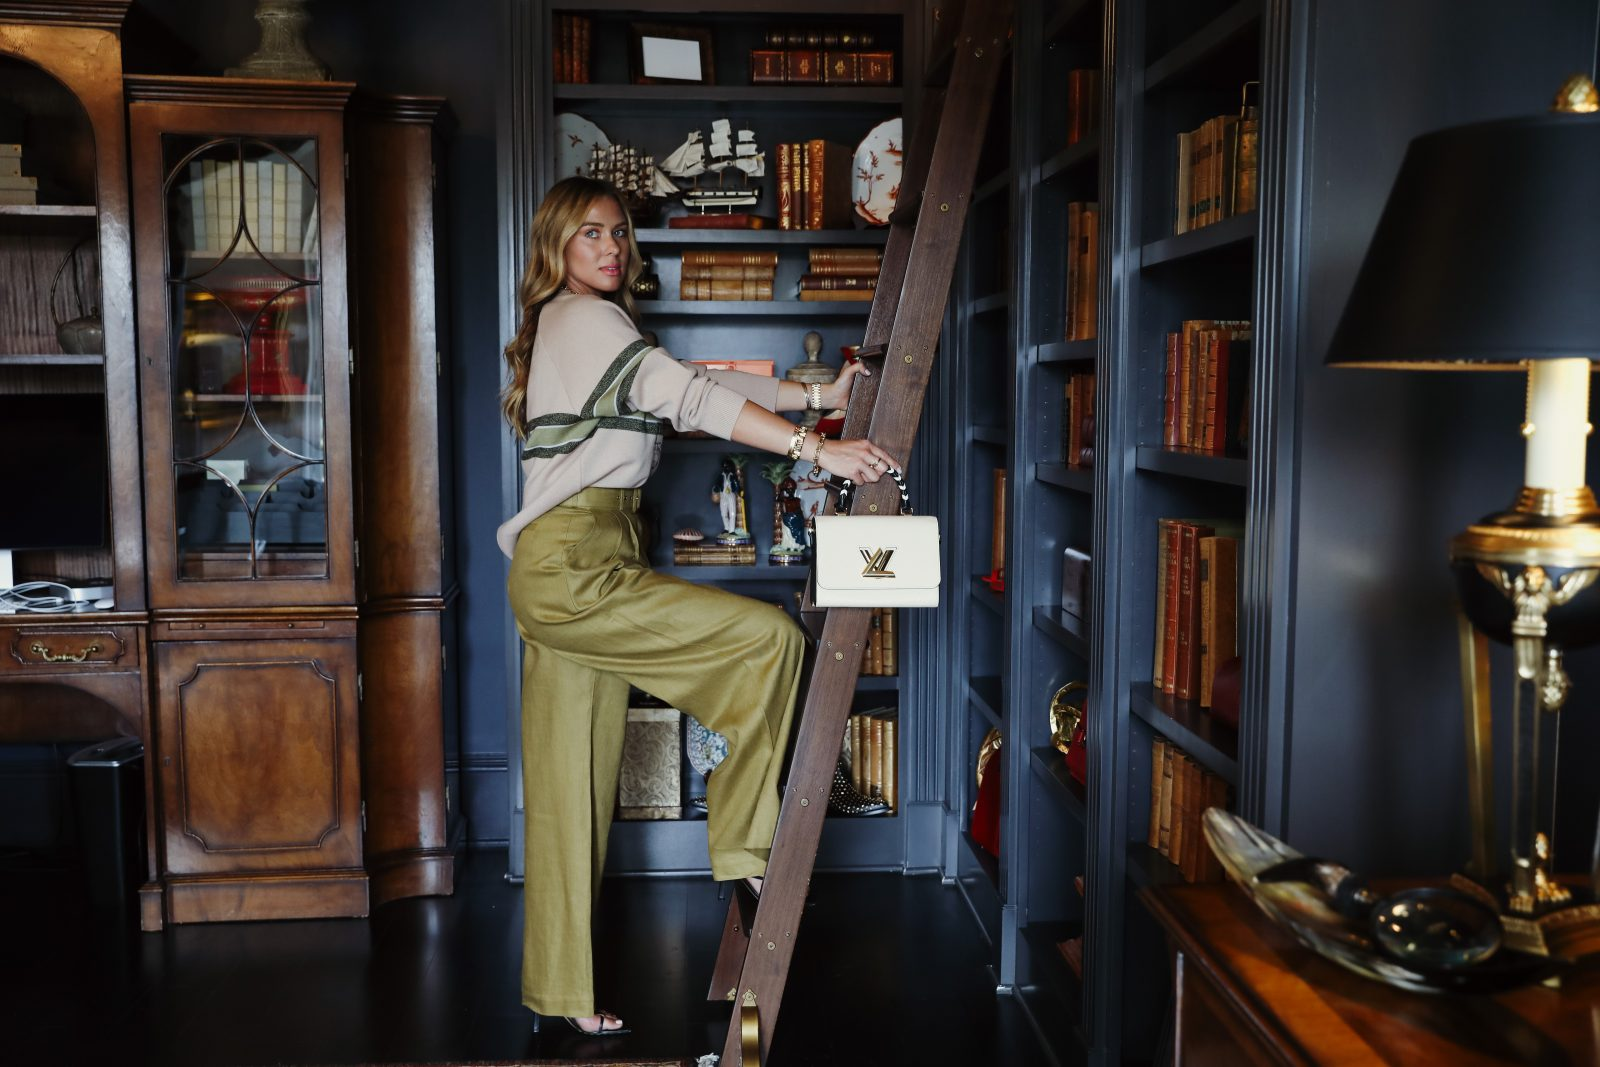 Vintage library photoshoot with Elizabeth Allen in olive dress pants